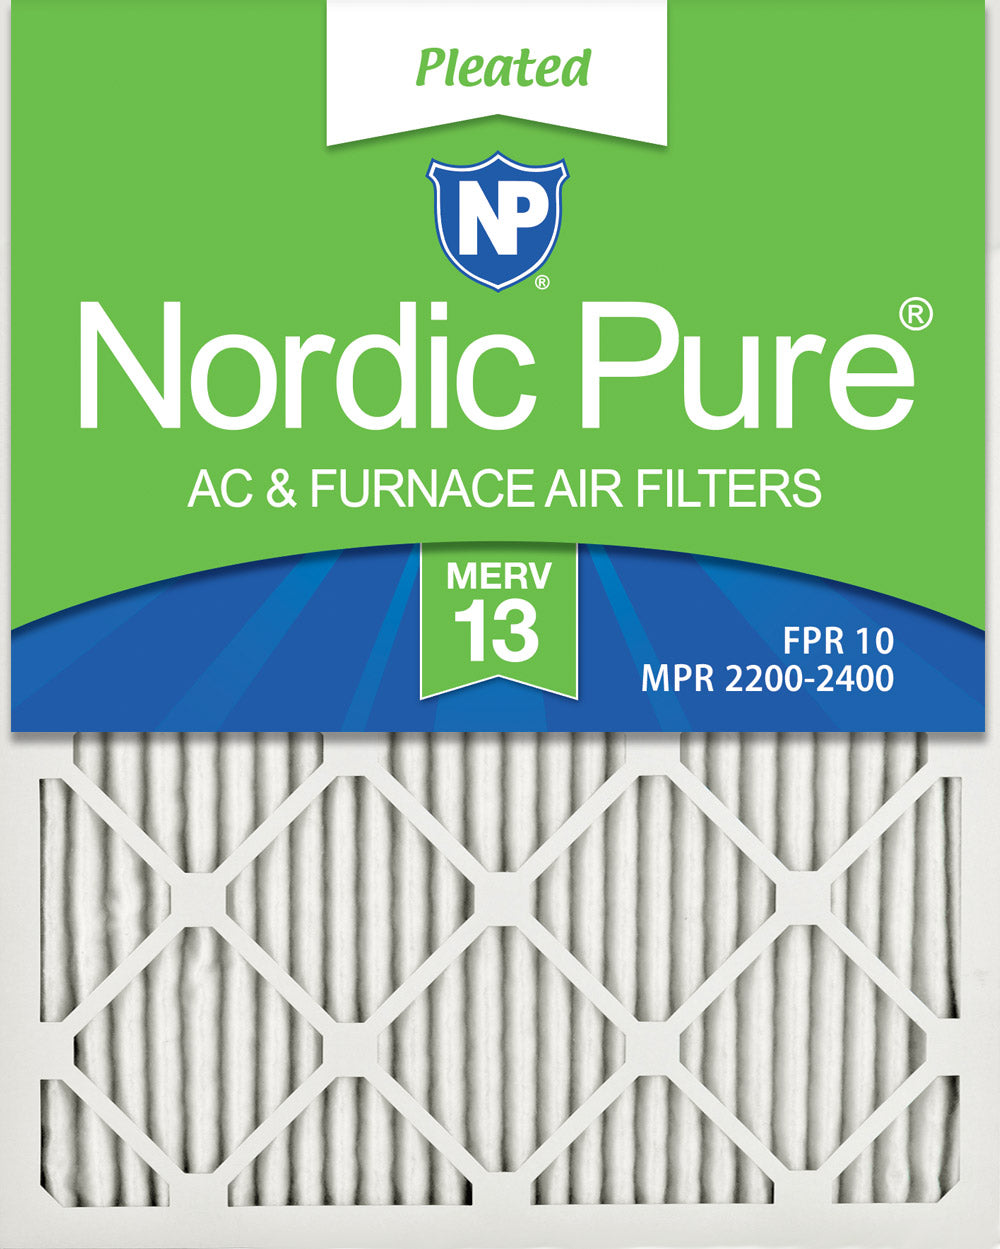 20x24x1 Pleated MERV 13 Air Filters 6 Pack